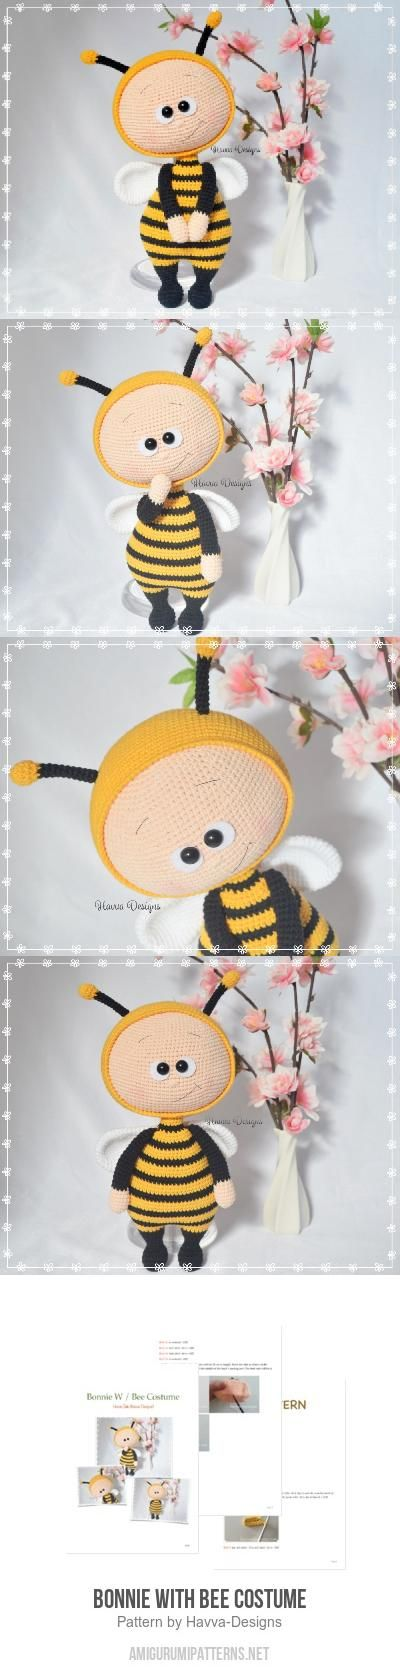 Bonnie With Bee Costume amigurumi pattern